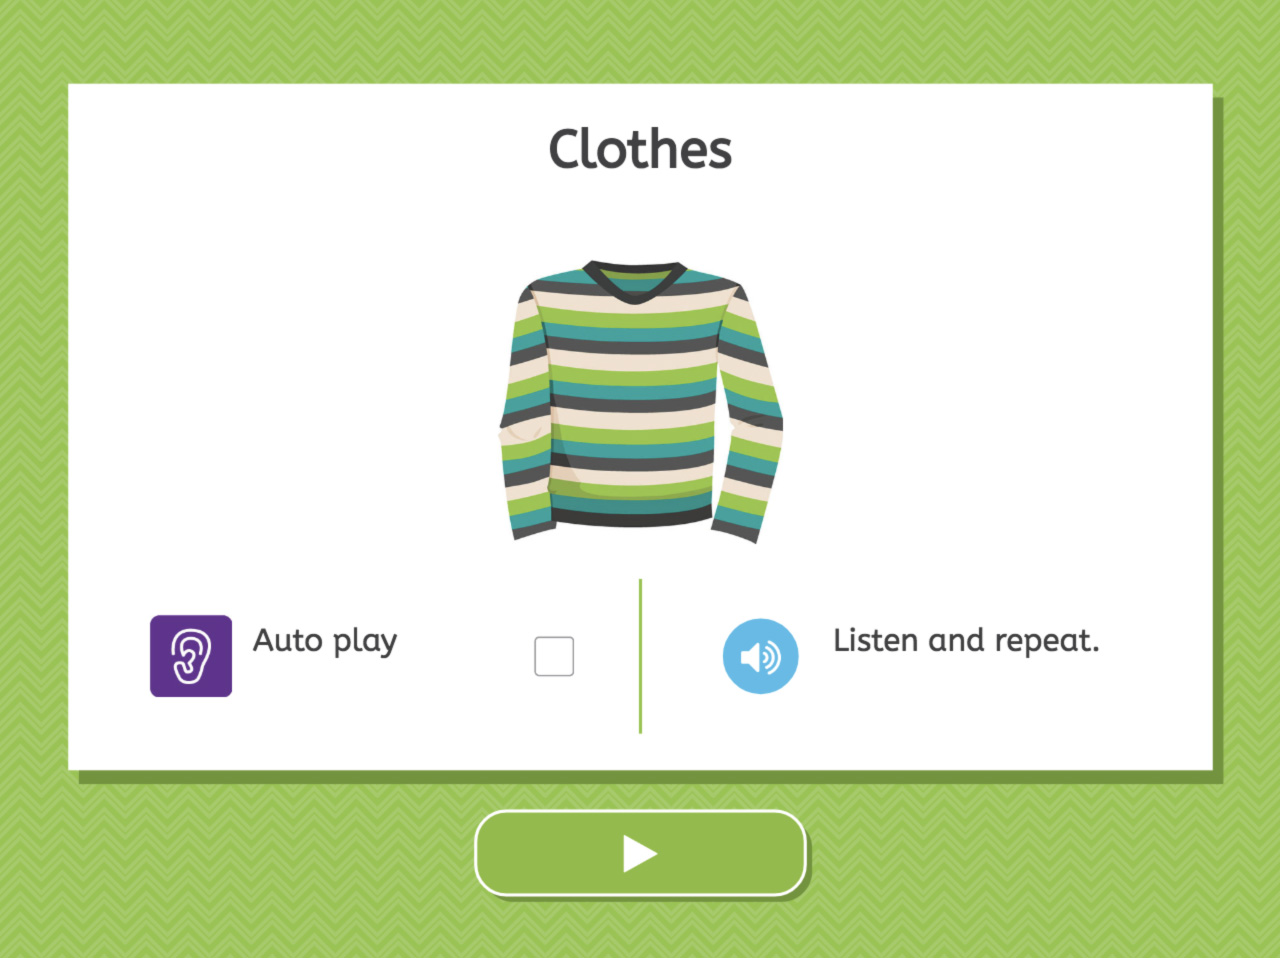 Clothes - Listening screenshot